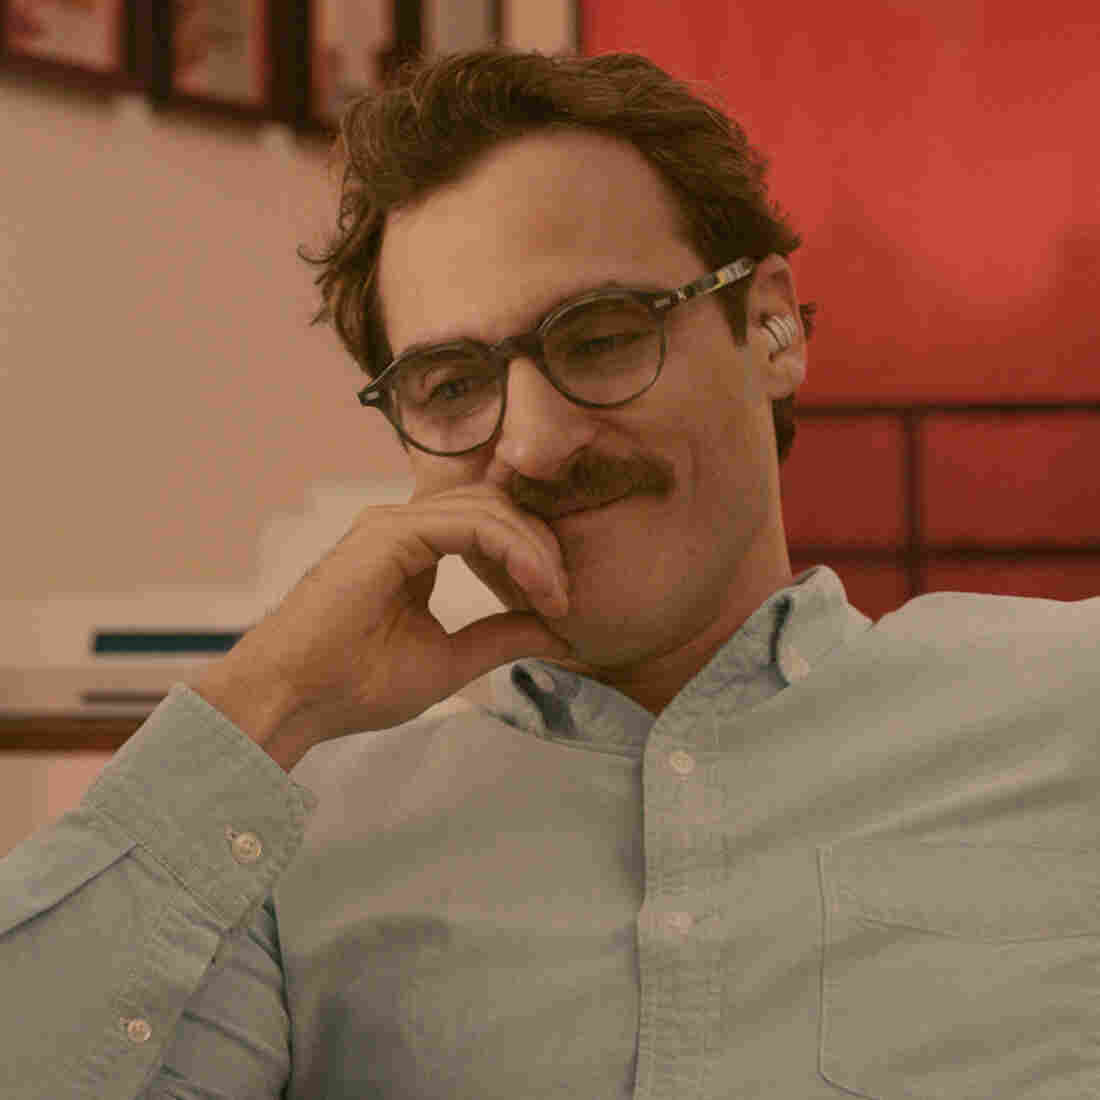 Spike Jonze Opens His Heart For 'Her'